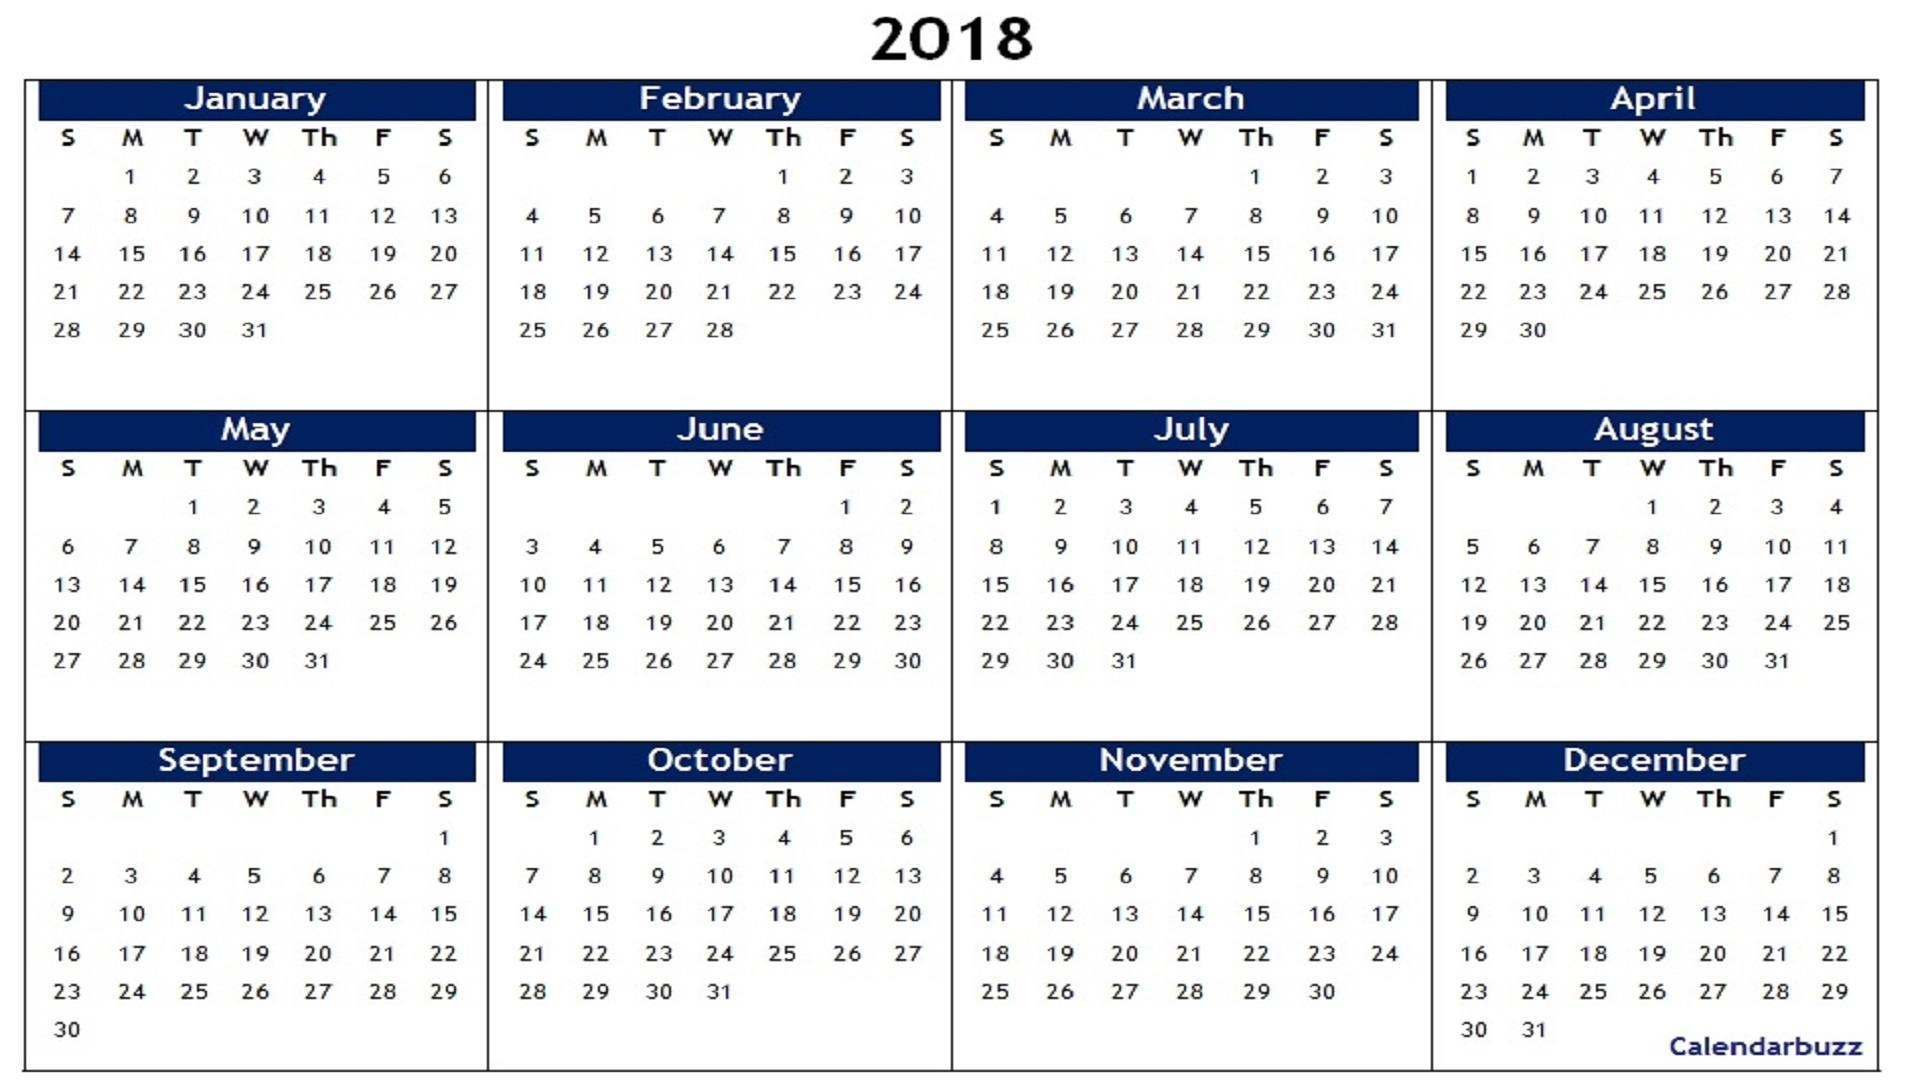 2018 Yearly Calendar Printable Templates Of Word, Excel, Pdf